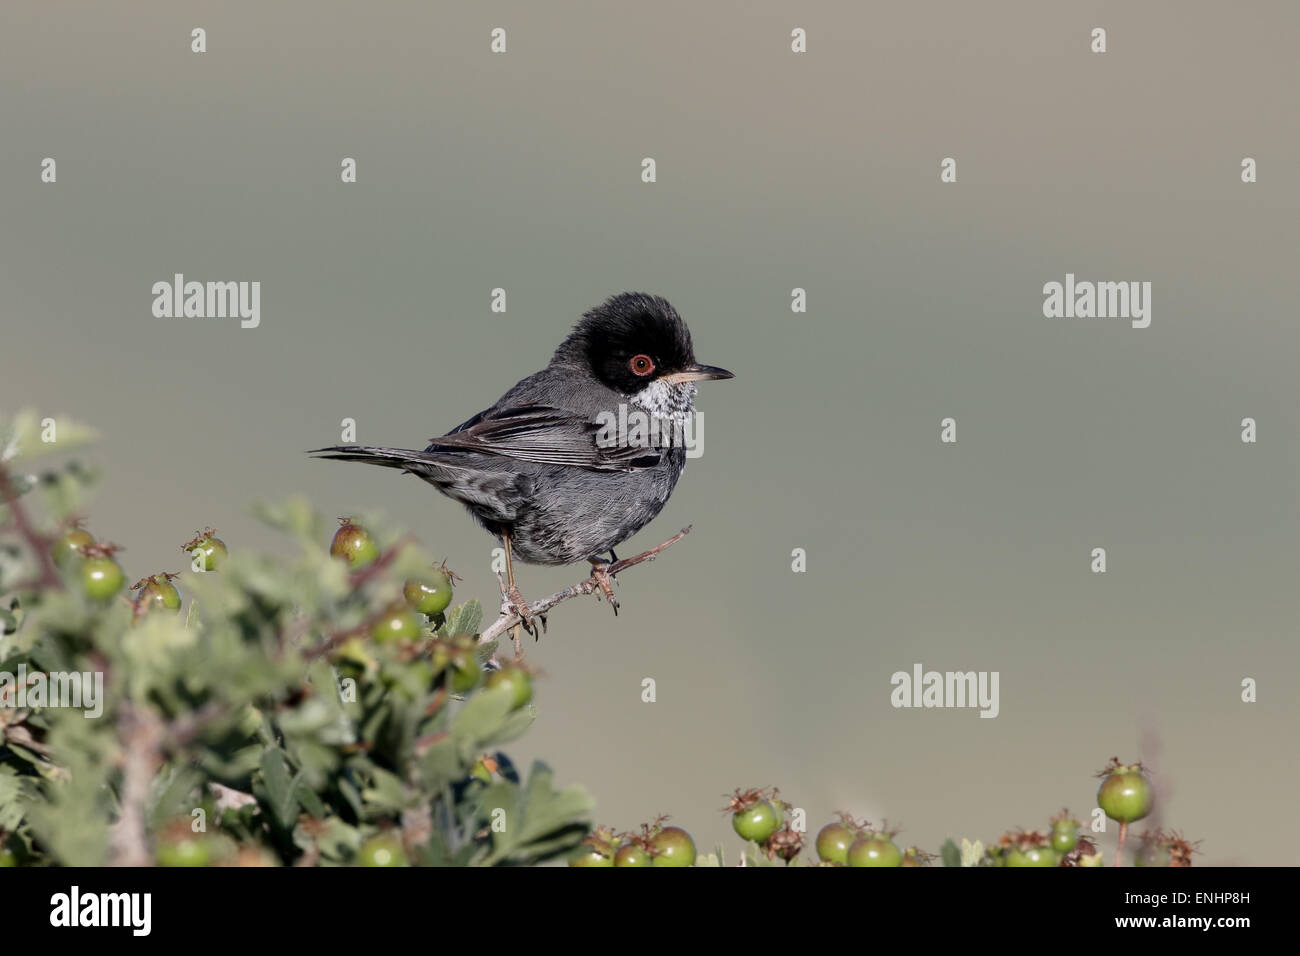 Cyprus warbler, Sylvia melanothorax, single male on perch, Cyprus, April 2015 Stock Photo